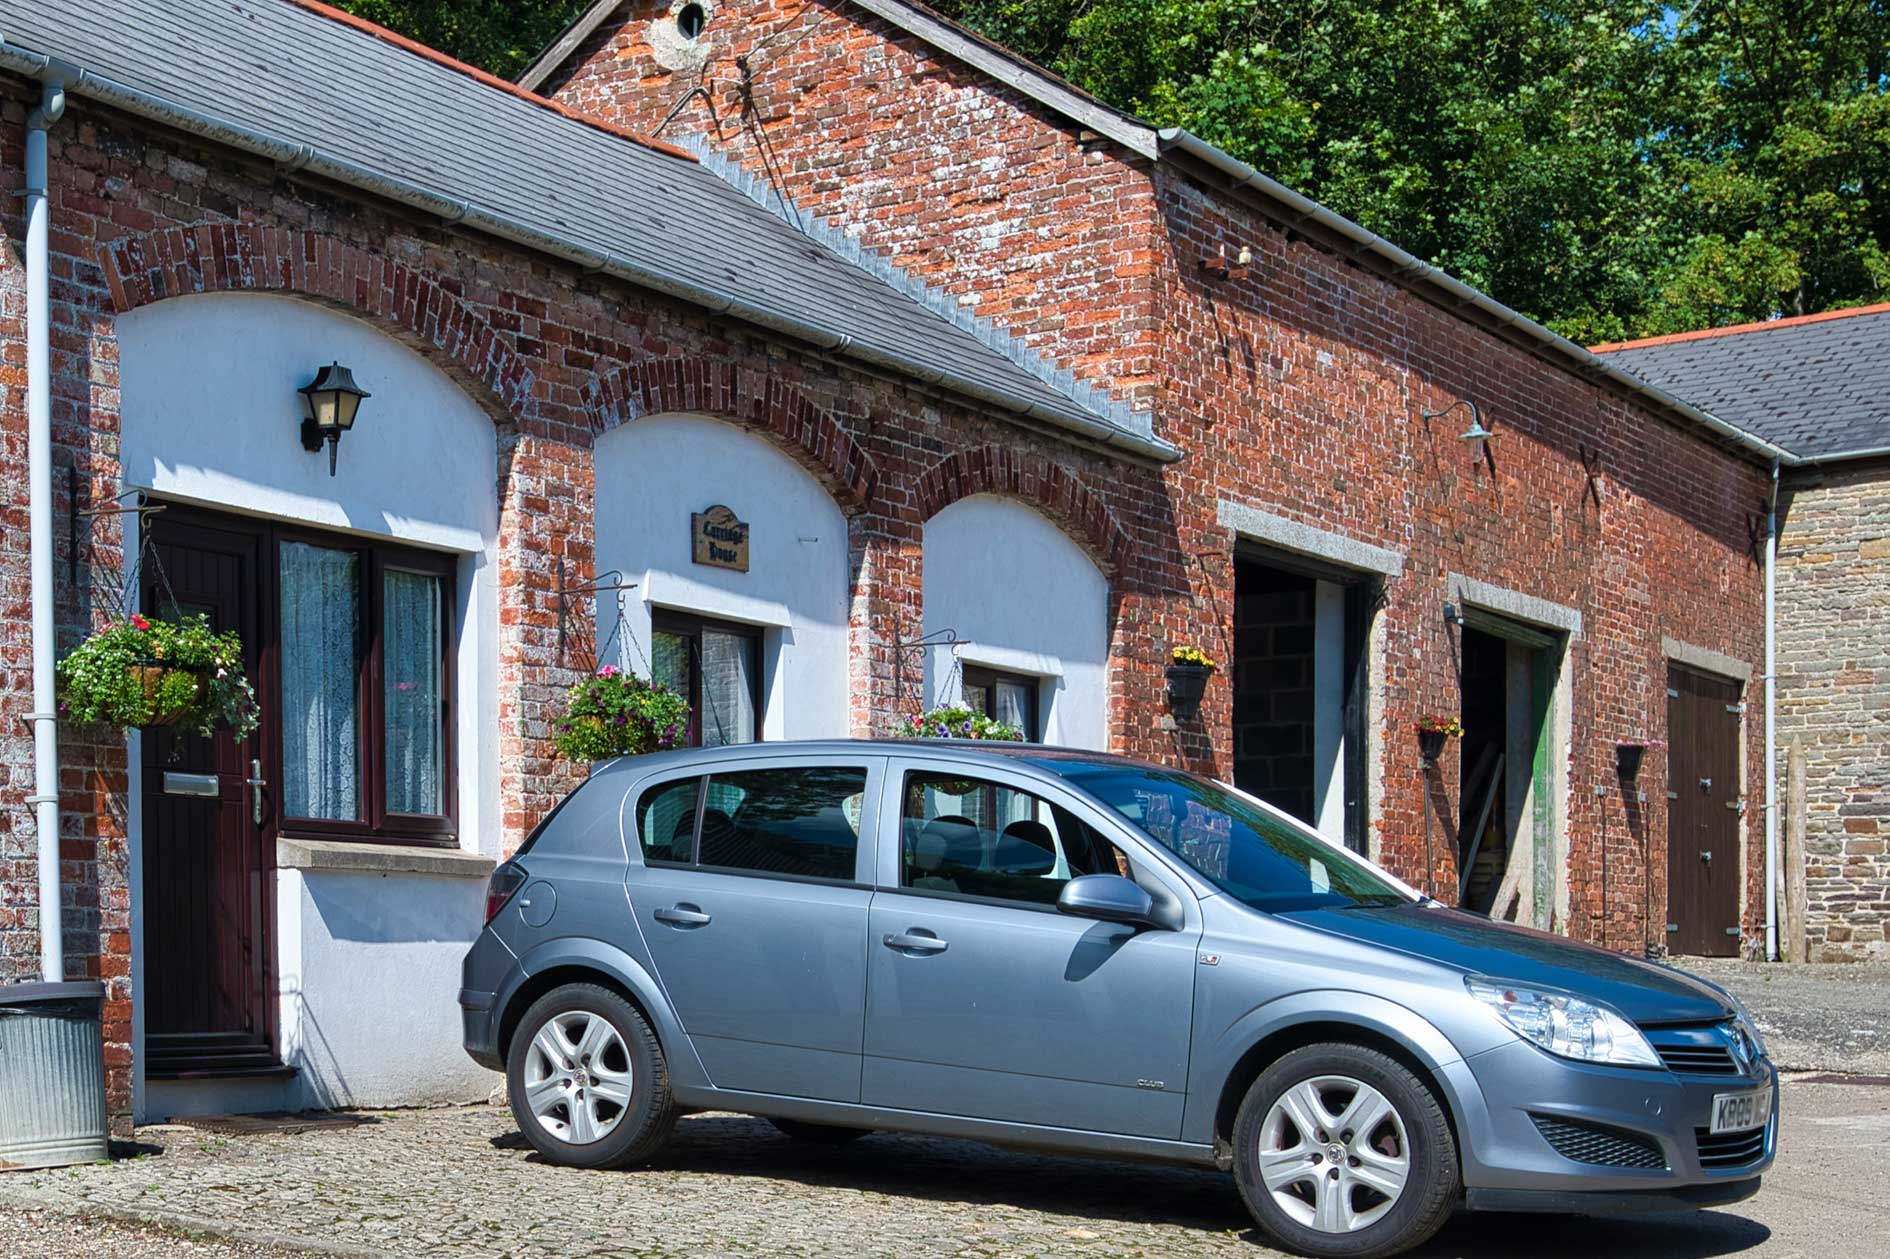 Silver Car Parked Outside Red Brick Converted Stable Building